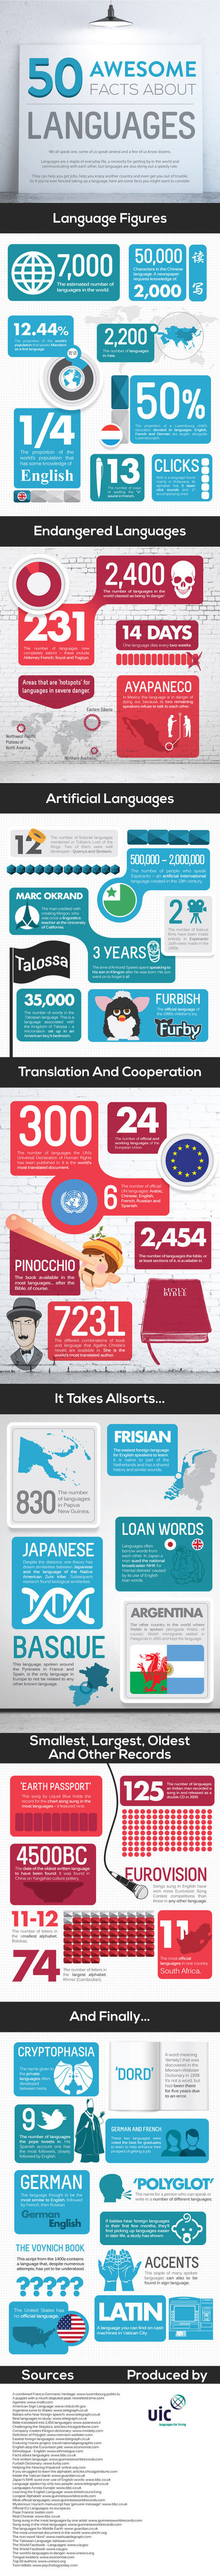 50 Awesome Facts about Languages [Infographic] | AvatarGeneration | Scoop.it